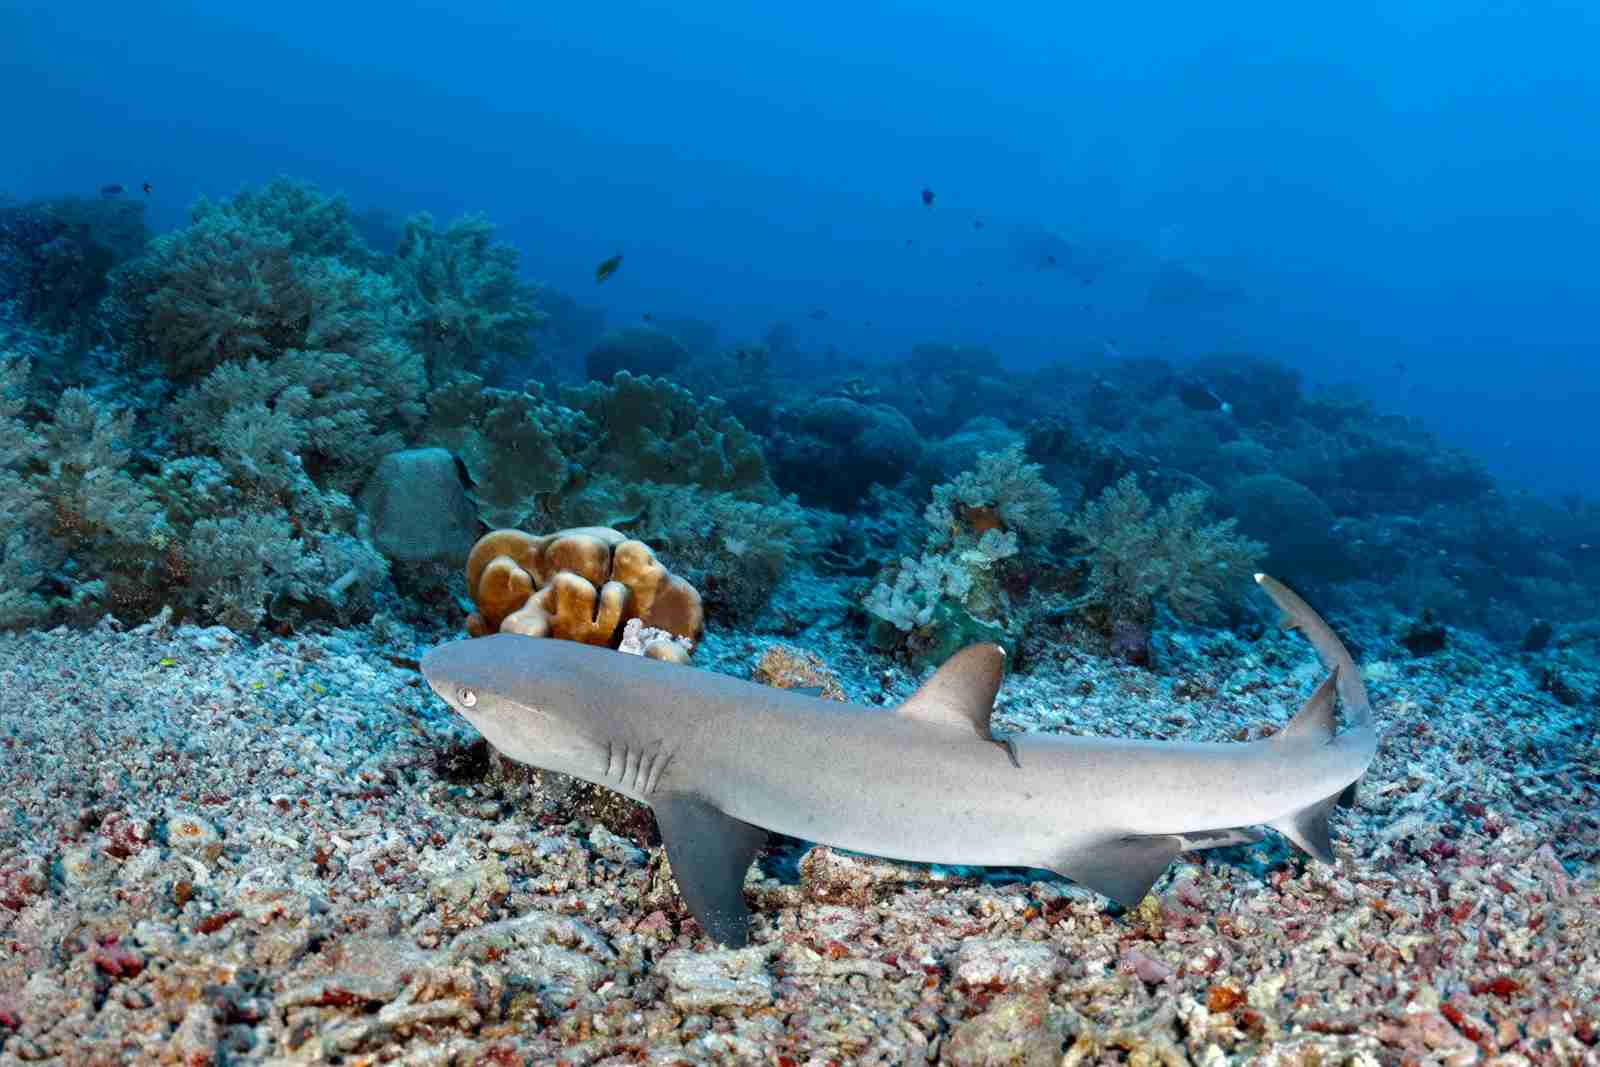 Tubbataha Reef National Marine Park in the Phillipines. (Photo by imageBroker/Norbert Probst/Getty Images)